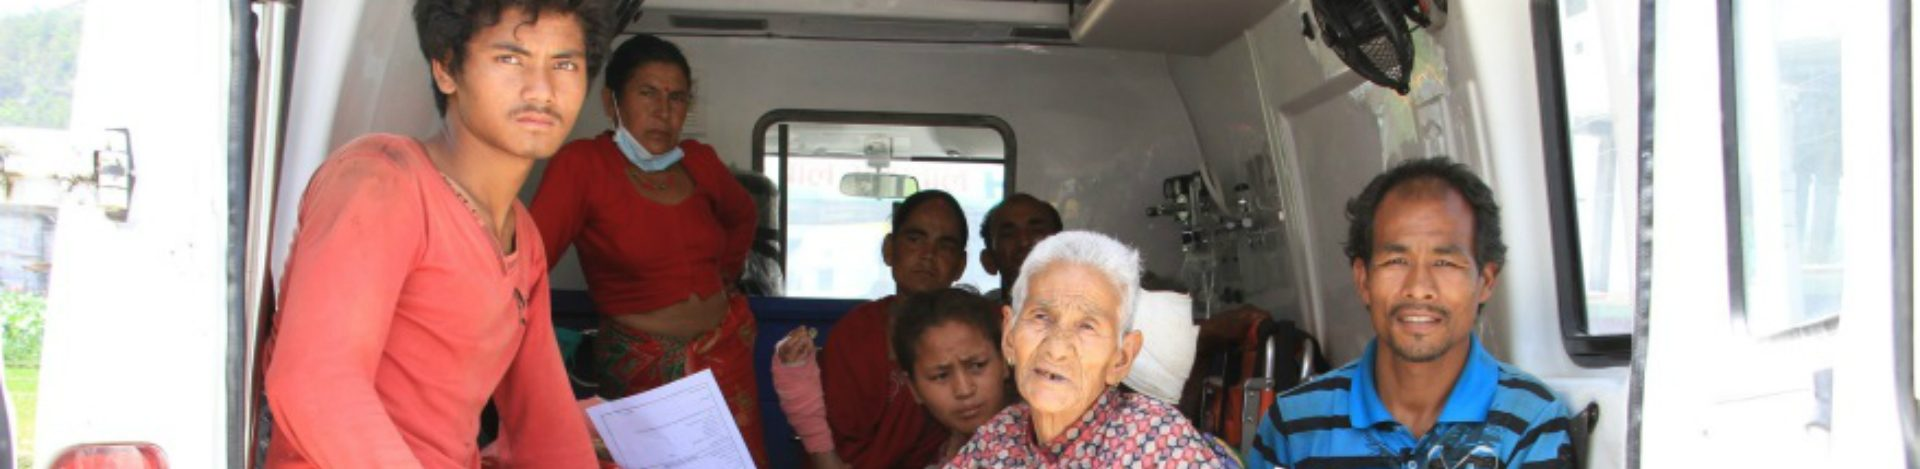 Patients being transported to hopsital supported by CBM following the Nepal earthquake in 2015.